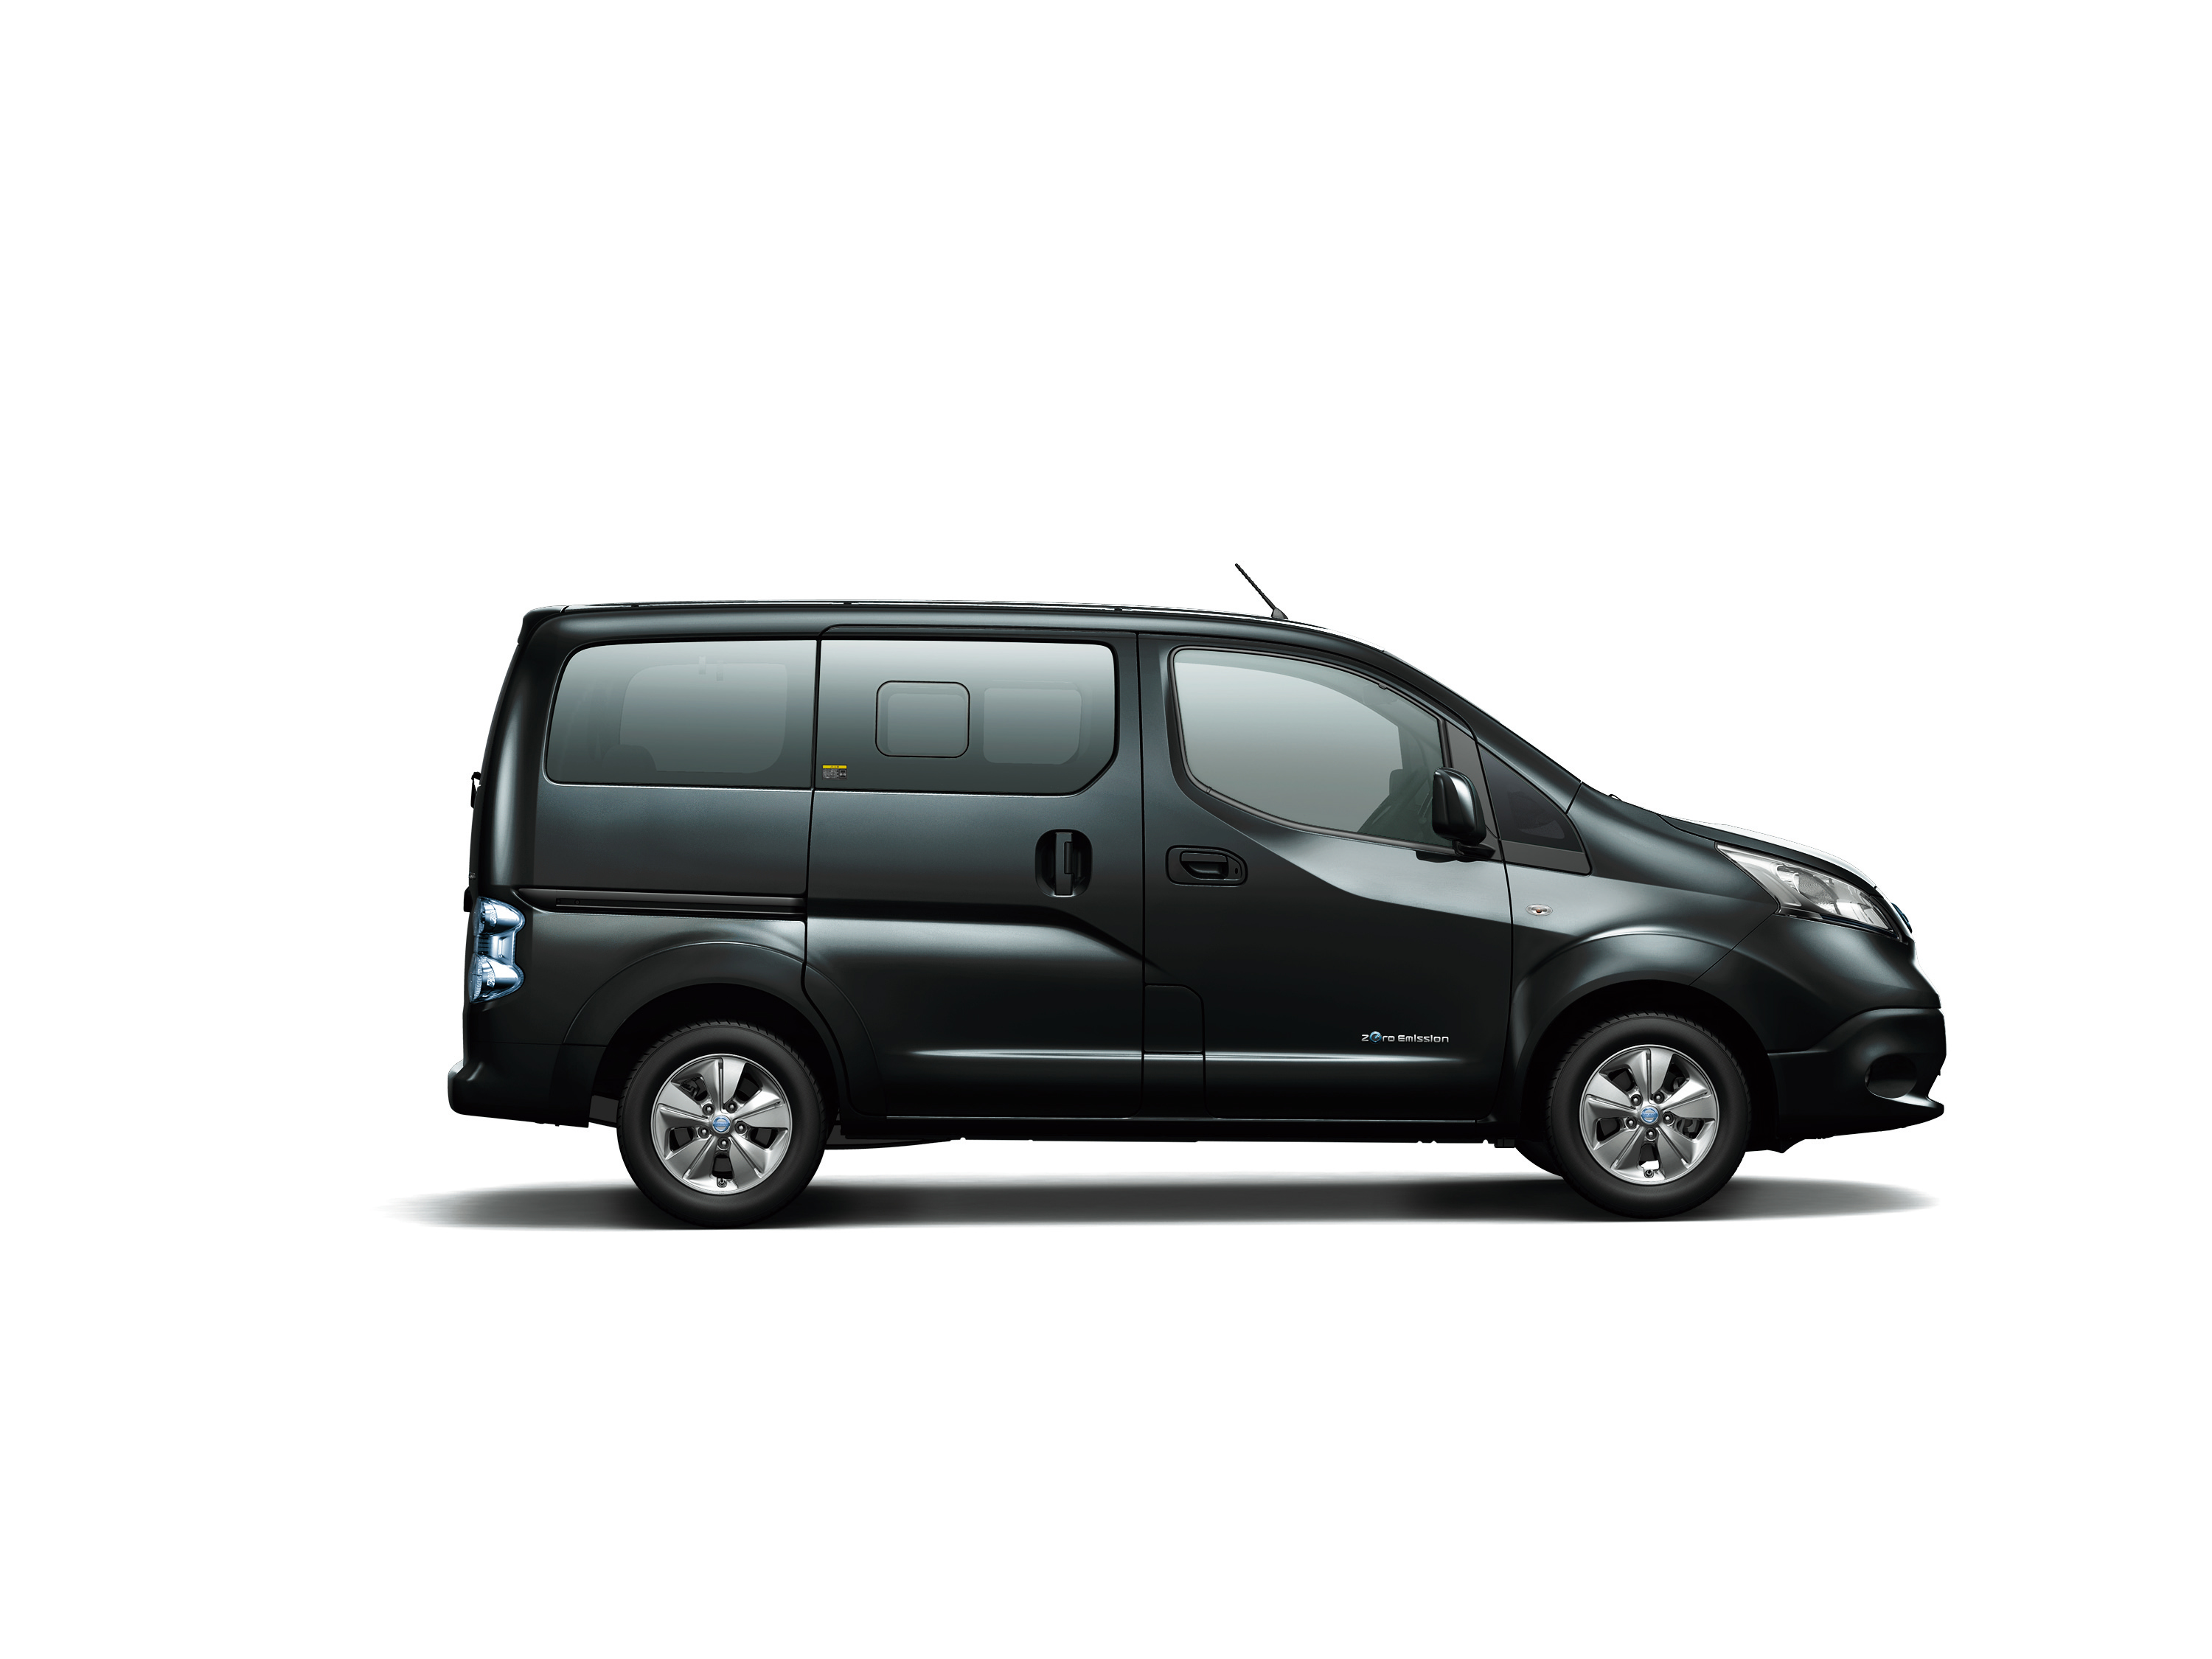 Like The New Leaf E Nv200 Also Features A Bi Directional Charging Technology Which Enables Operators To Return Excess Energy D In Battery